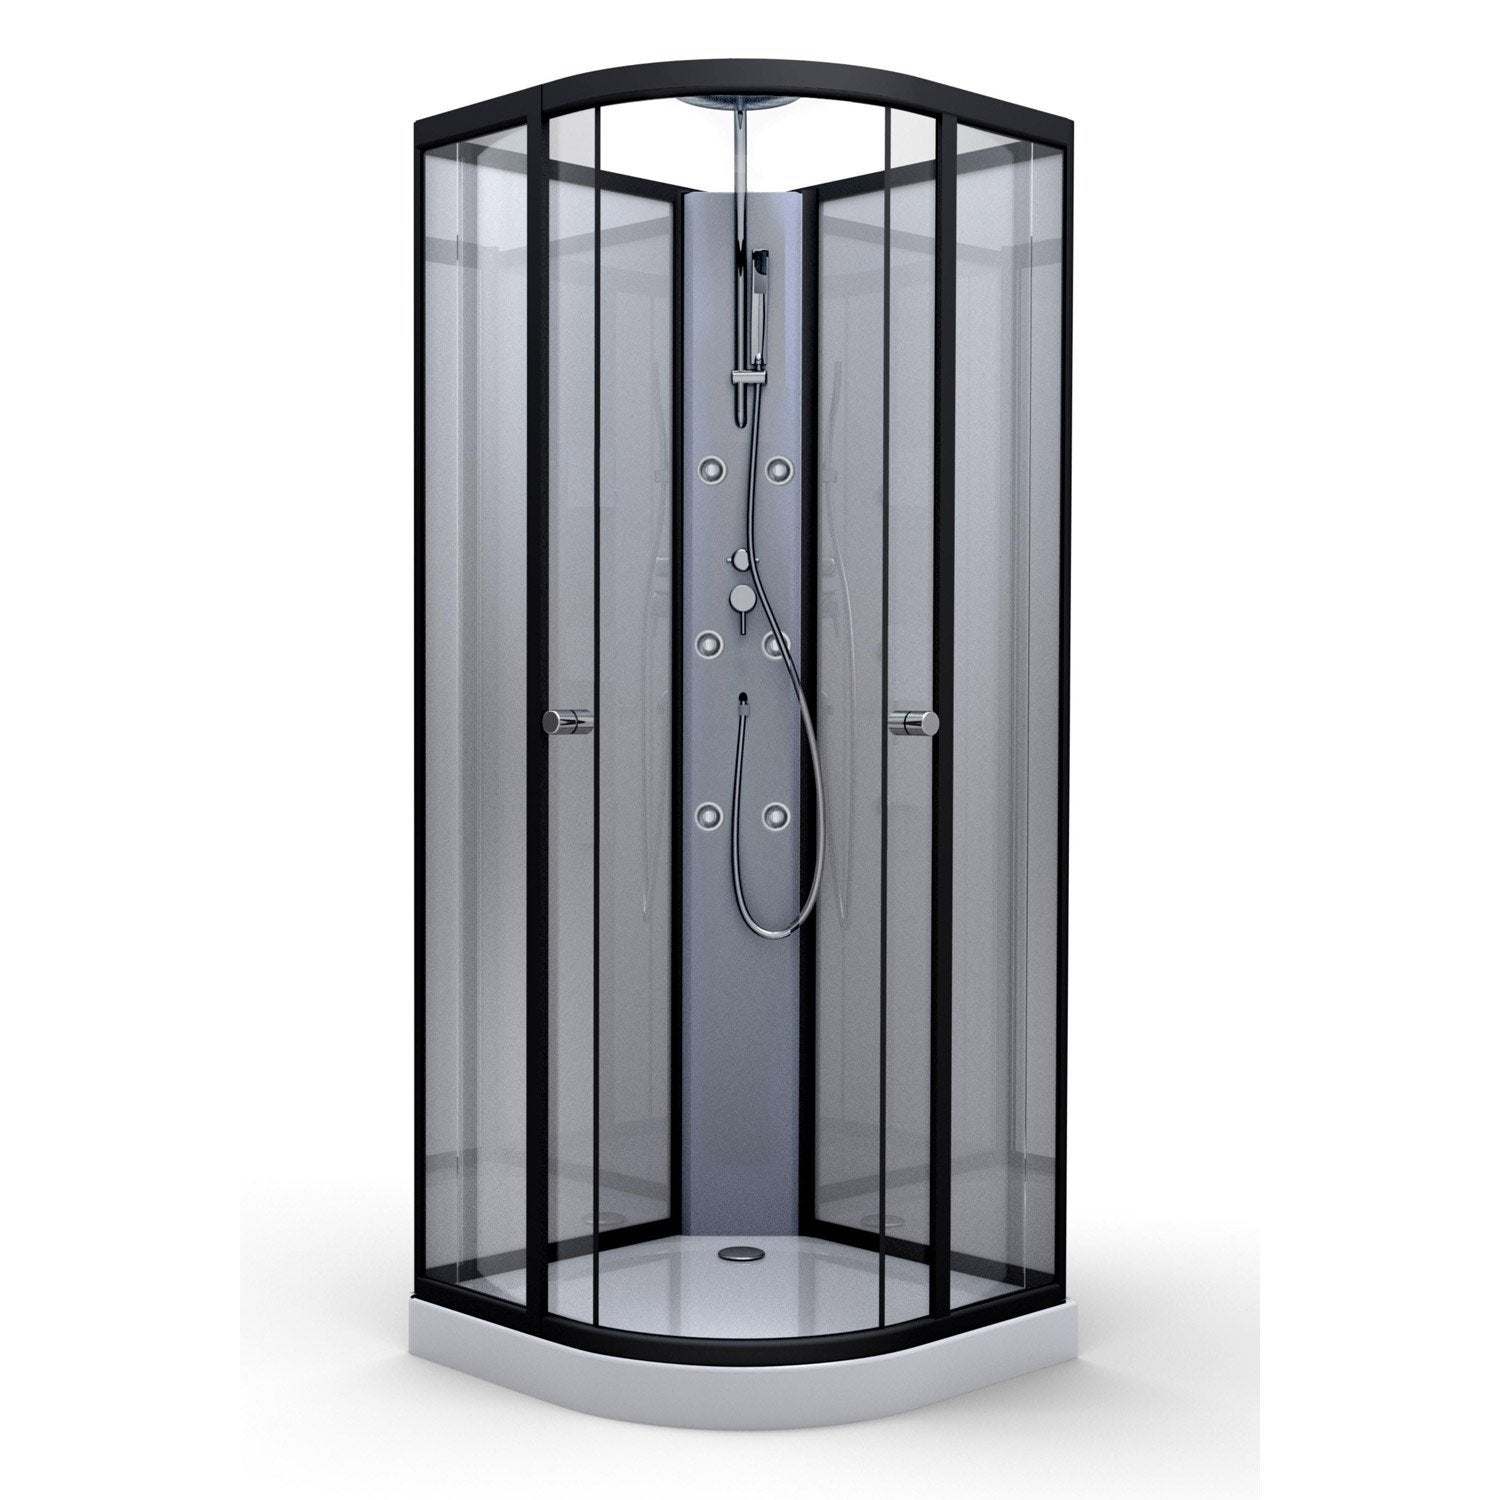 cabine de douche 75x75 pas cher avec leroy merlin brico. Black Bedroom Furniture Sets. Home Design Ideas